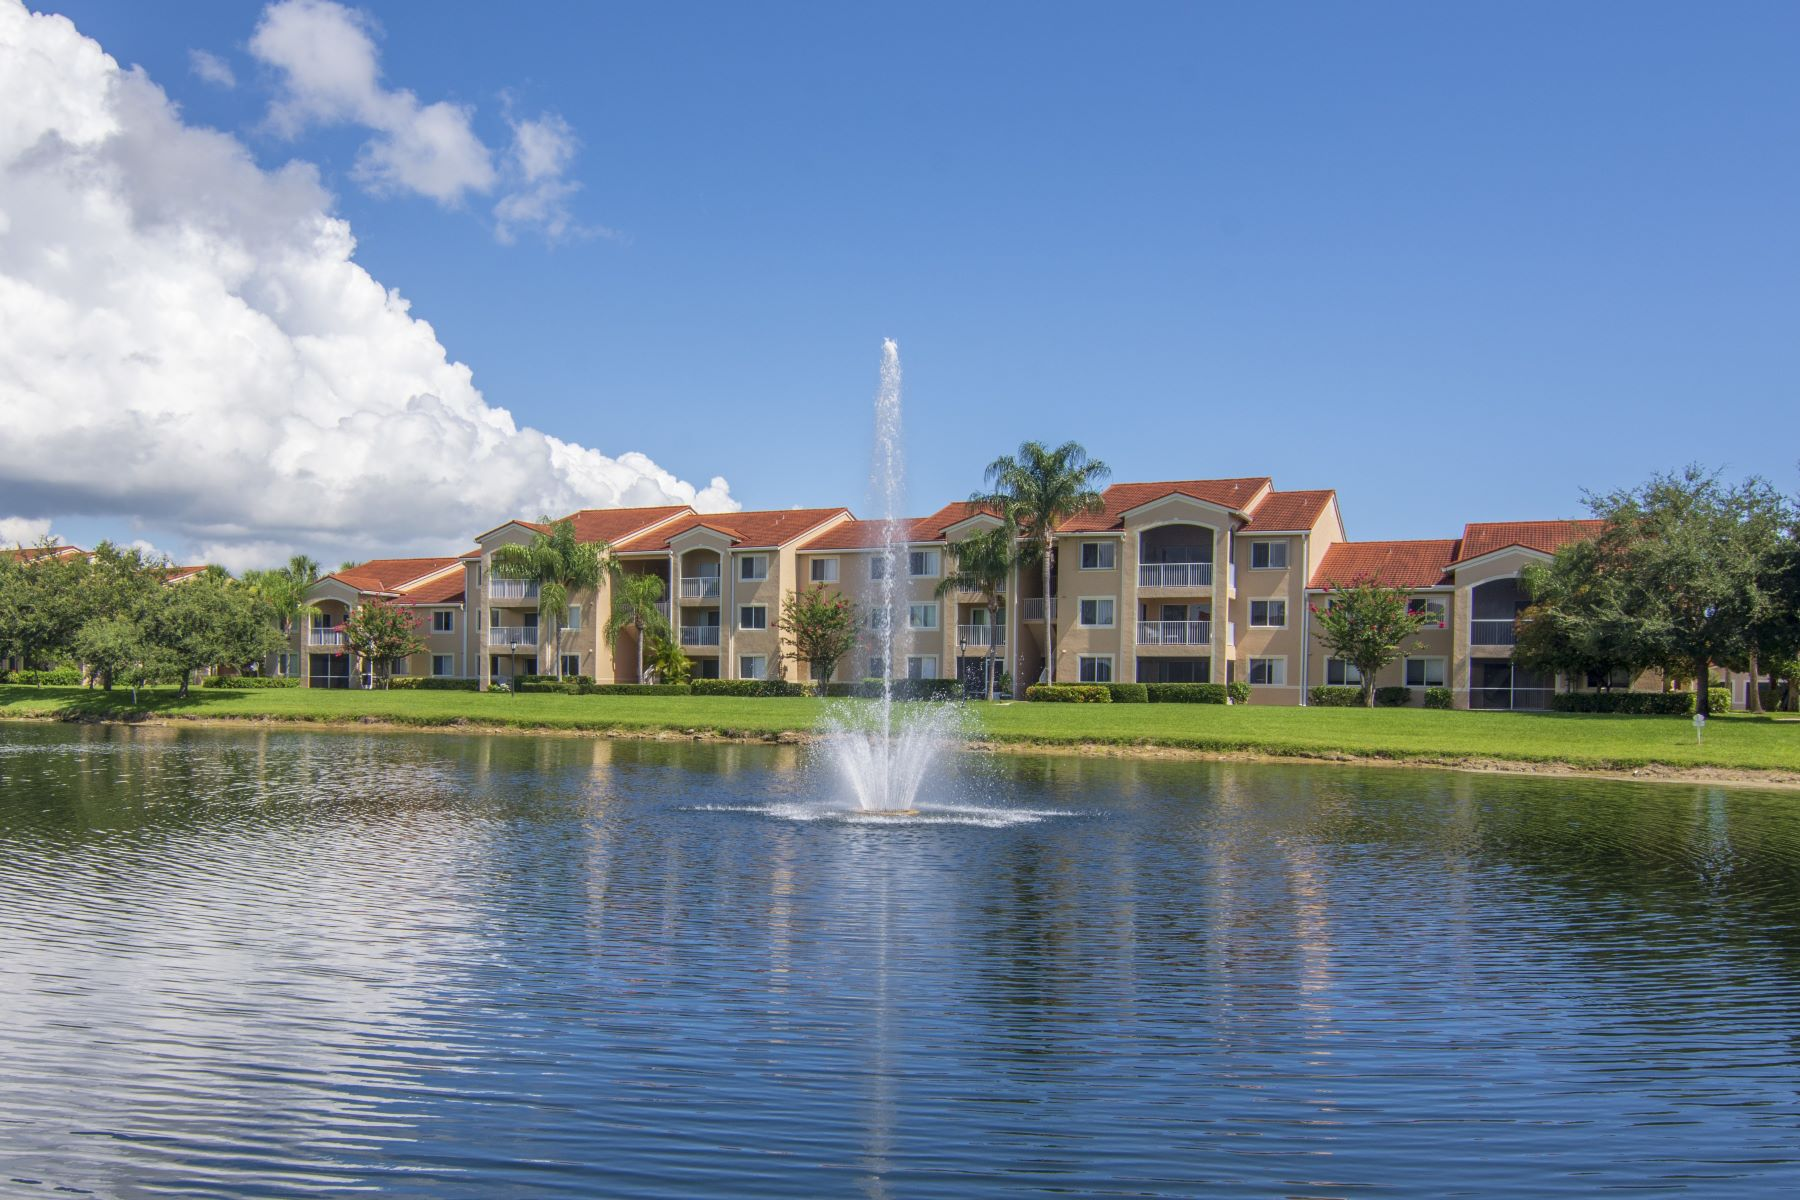 for Sale at Beautiful Two Bedroom Second Floor Condo 1650 N 42nd Circle 209 Vero Beach, Florida 32967 United States